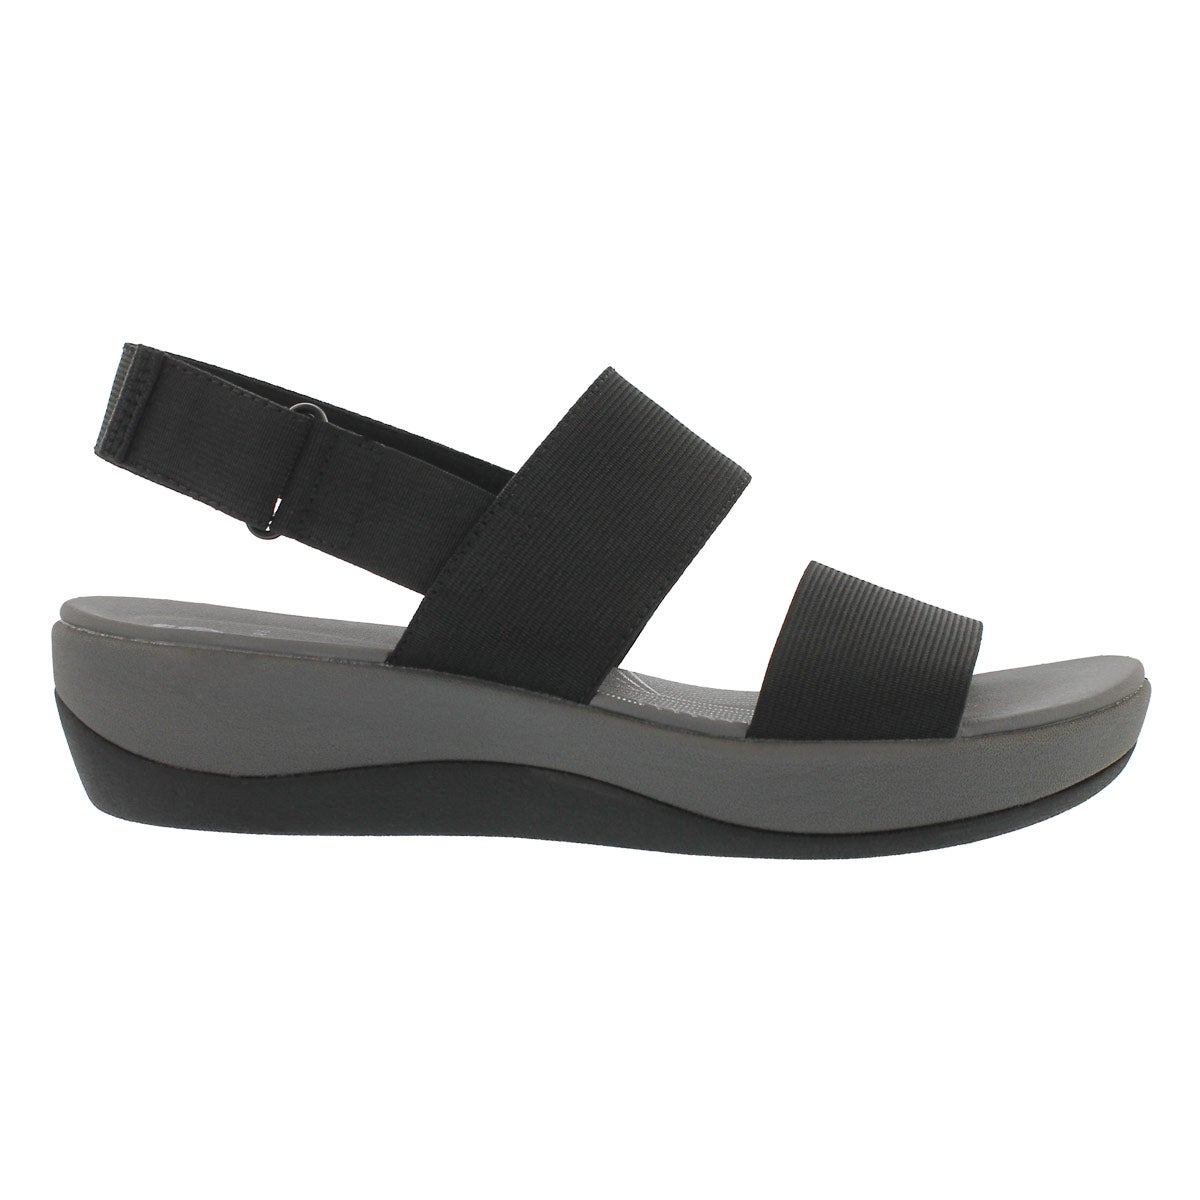 Lds Arla Jacory black wedge sandal